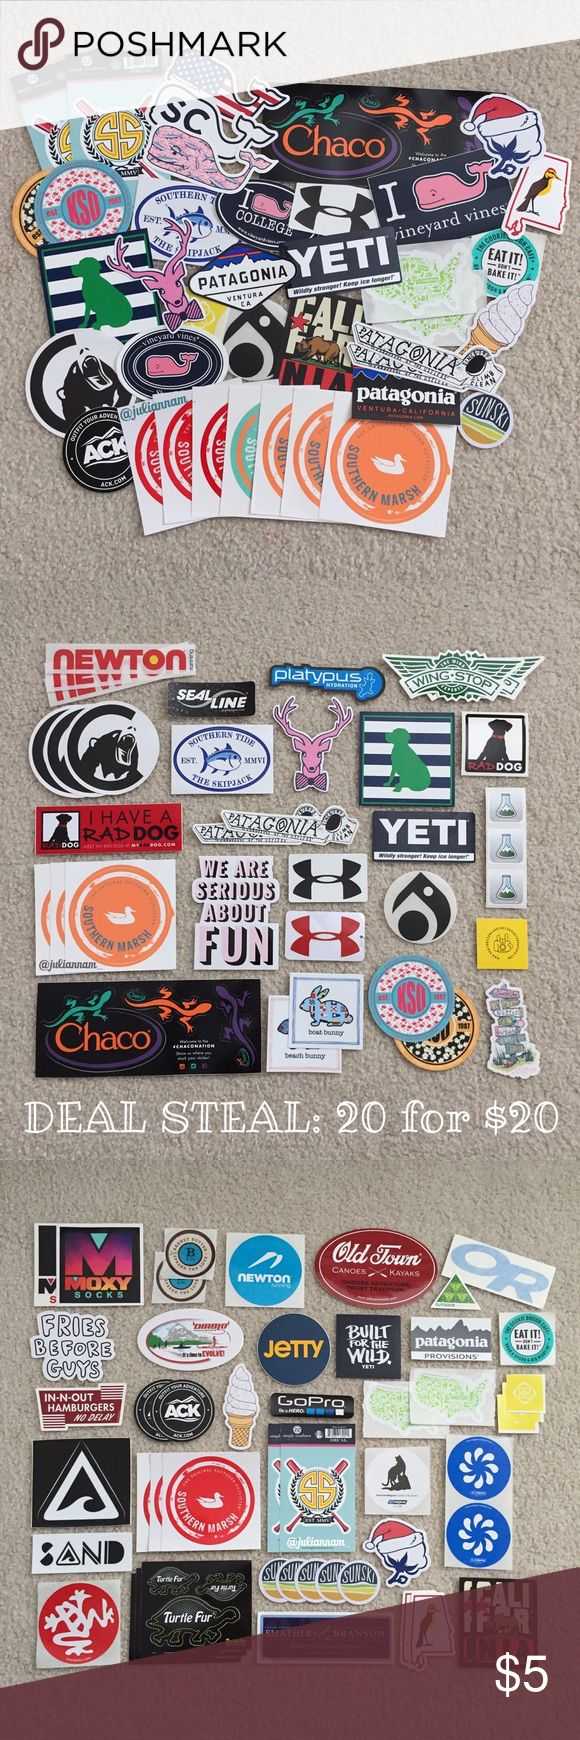 PREPPY STICKER BUNDLE (PRICE IS FOR 1 STICKER) SOLD OUT: Patagonia, Lokai, in n out, yeti, fries b4 guys Preppy stickers like Vineyard Vines & Chaco perfect for waterbottles, cars, laptops, etc. SOME STICKERS MAY COST $1 MORE BC OF BRAND 1 for $4 2 for $6 3 for $7 4 for $8 5 for $9 6 for $10 and so on 20 FOR $20 DEAL (LIMITED TIME) STICKERS IN THE 2-4 PICTURES ARE AVAILABLE. FIRST PICTURE AVAILABILITY VARIES! Comment stickers you want, & I'll make the listing! (: Can buy cheaper on Ⓜ...